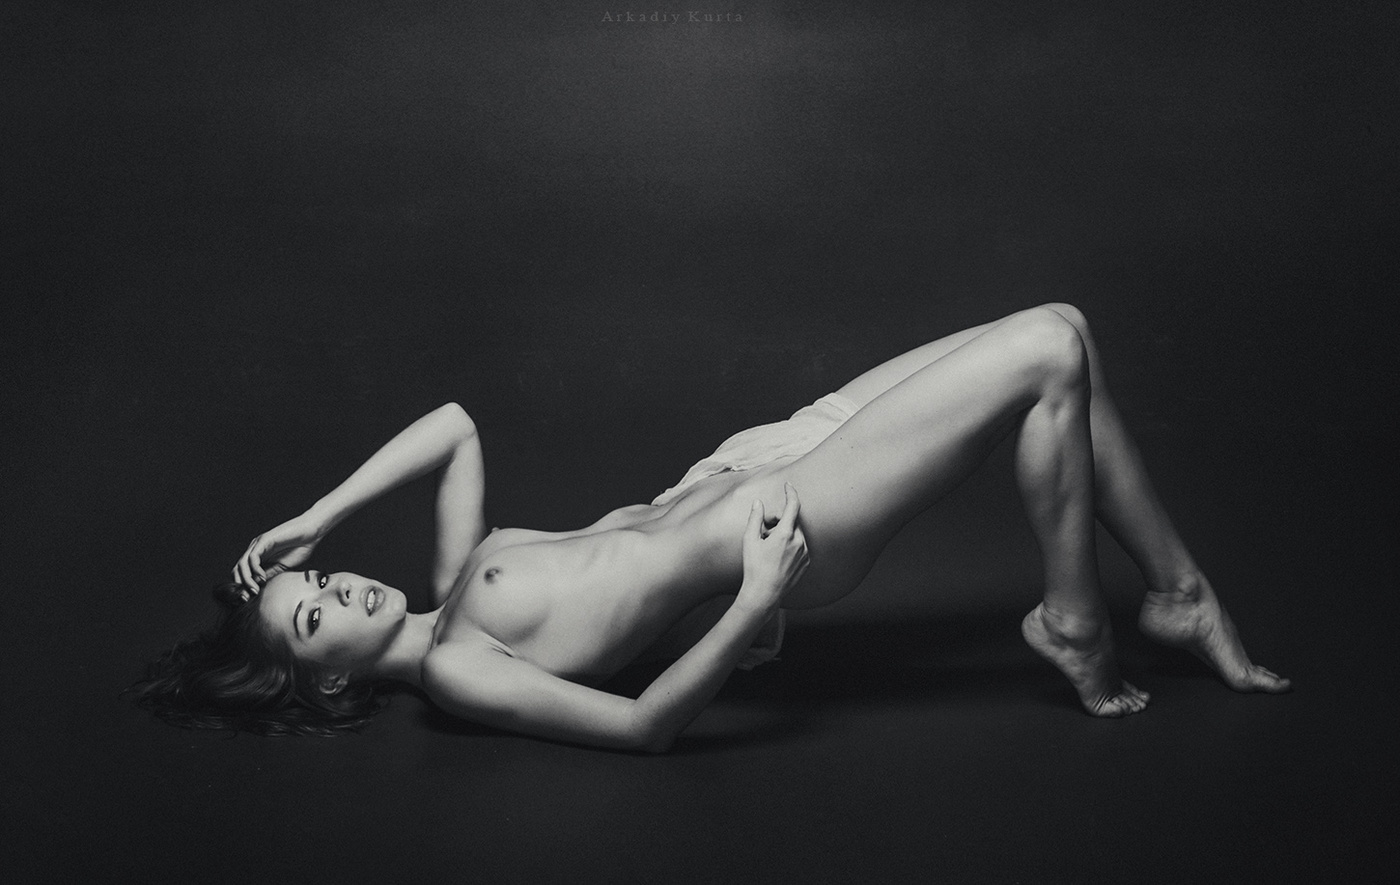 Usual girls nude photography